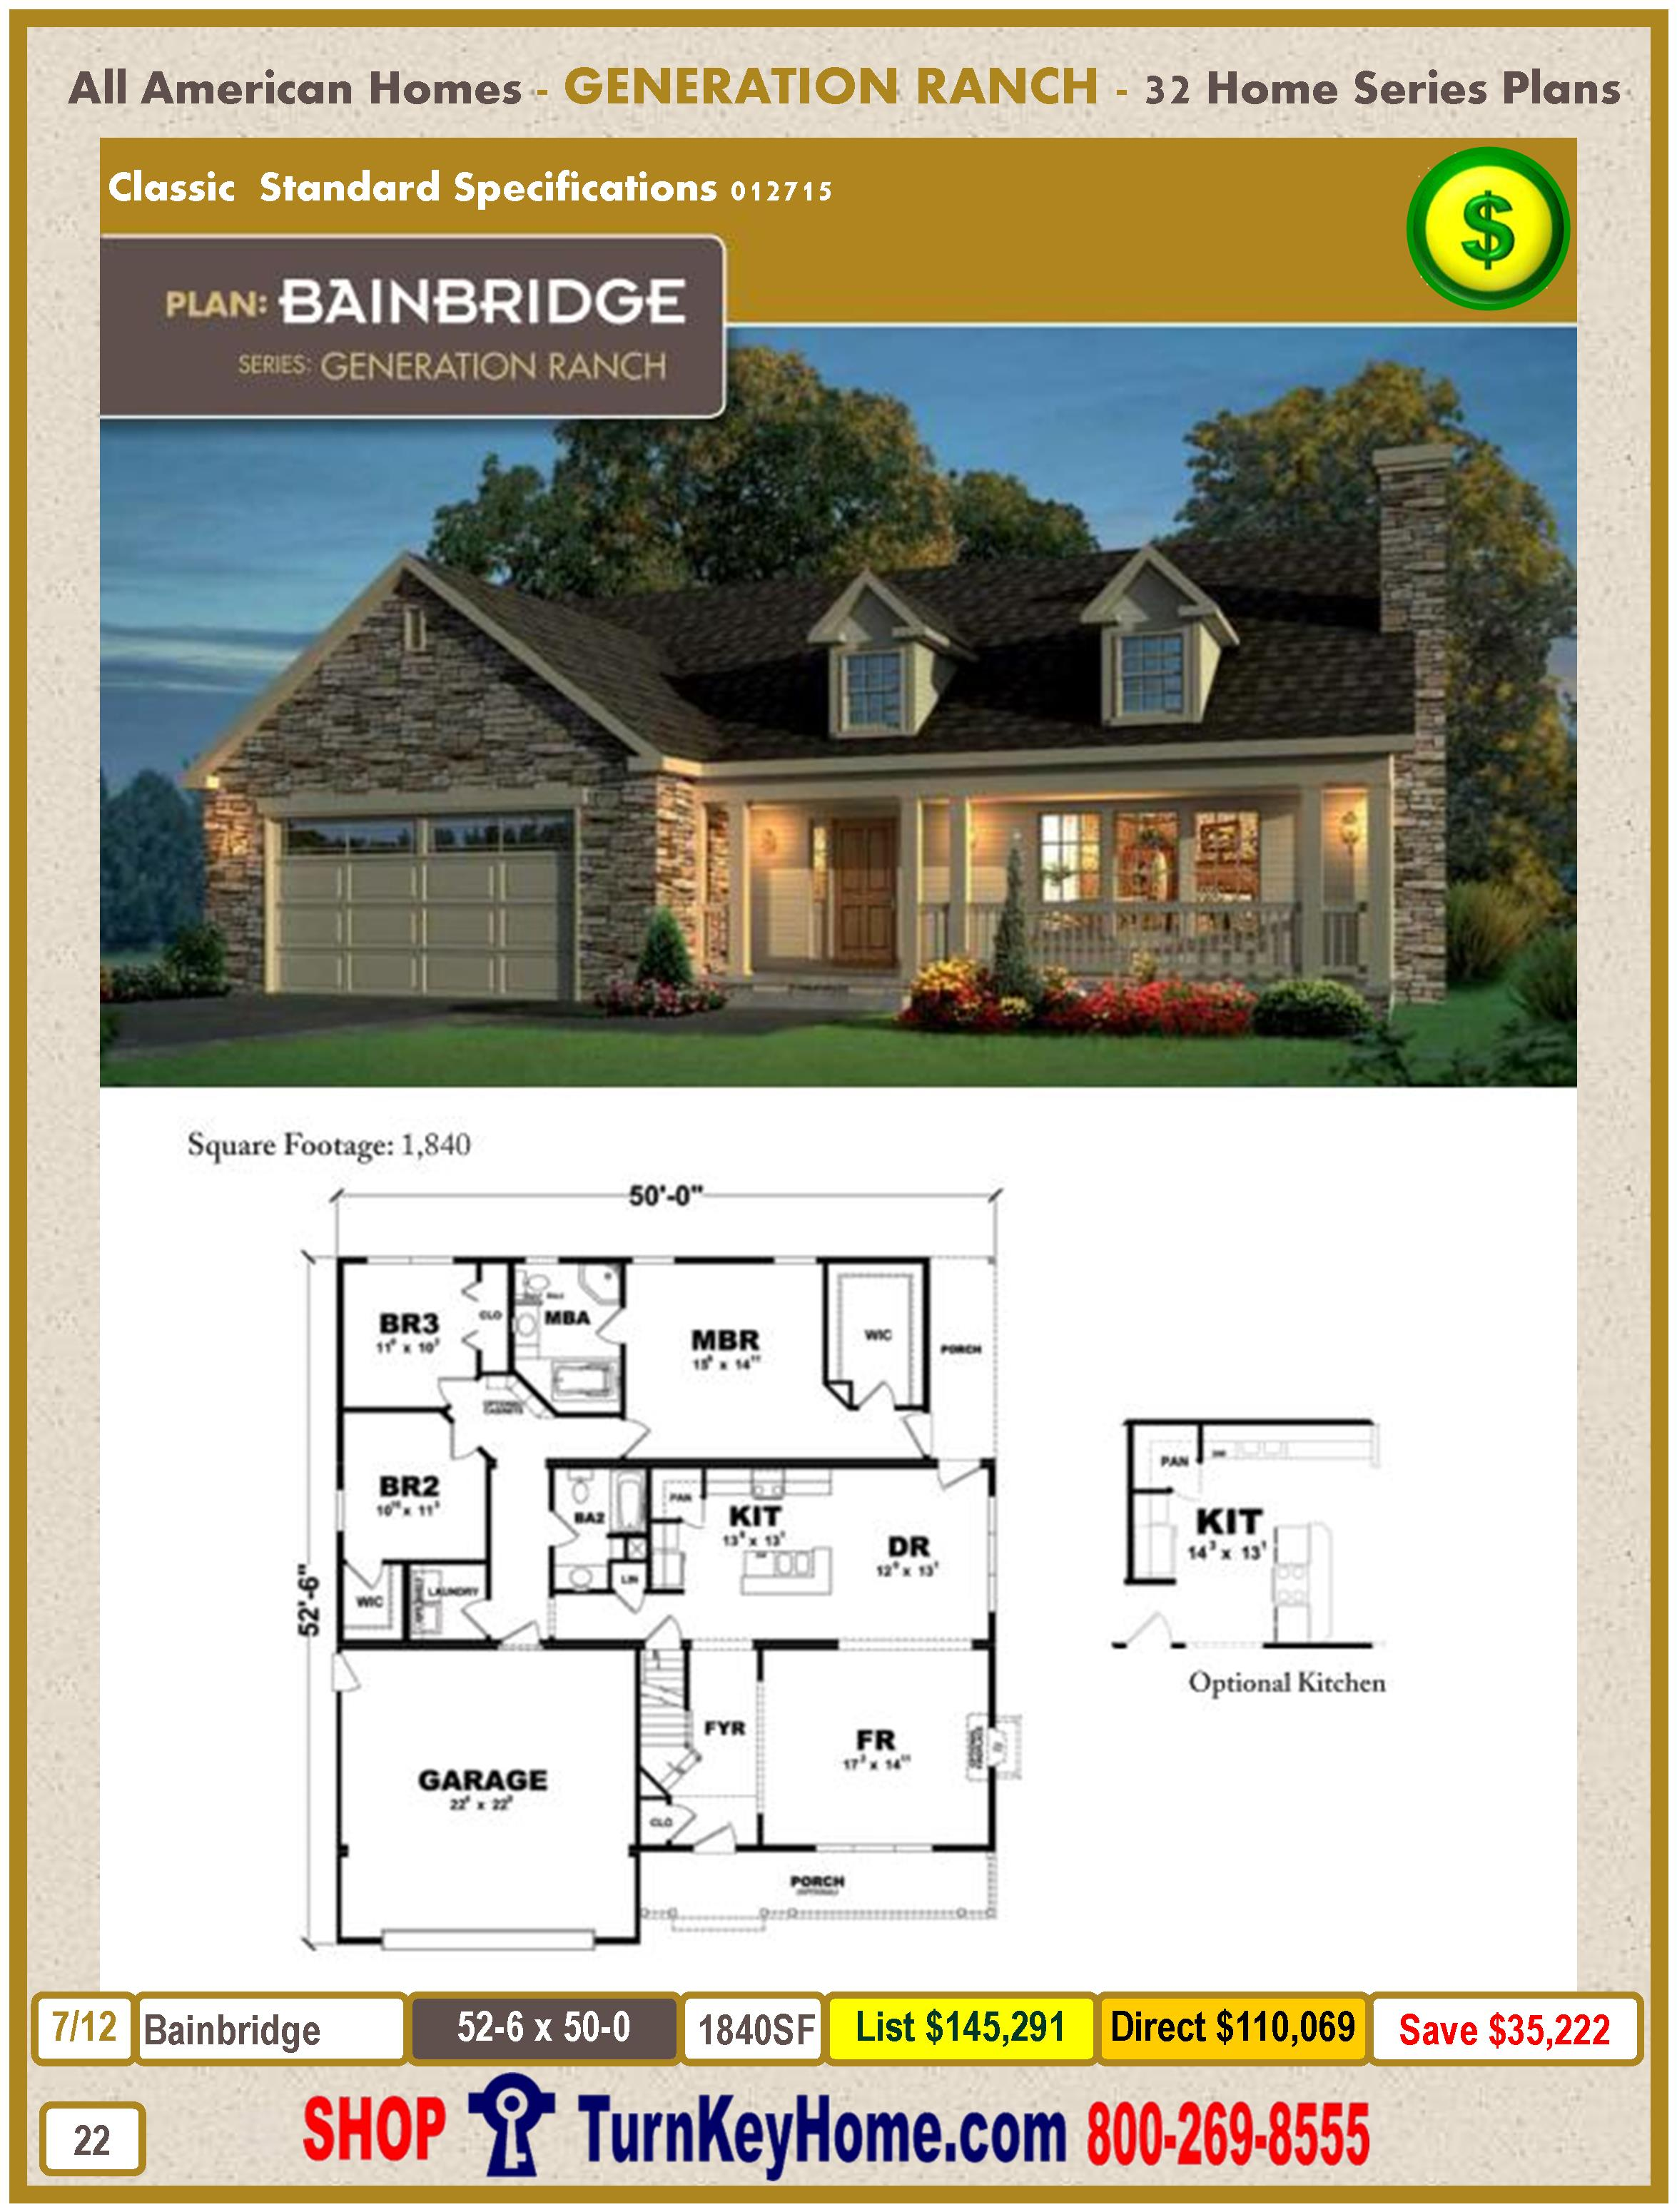 Modular.All.American.Homes.Generation.Ranch.Home.Series.Catalog.Page.22.Bainbridge.Direct.Price.021415